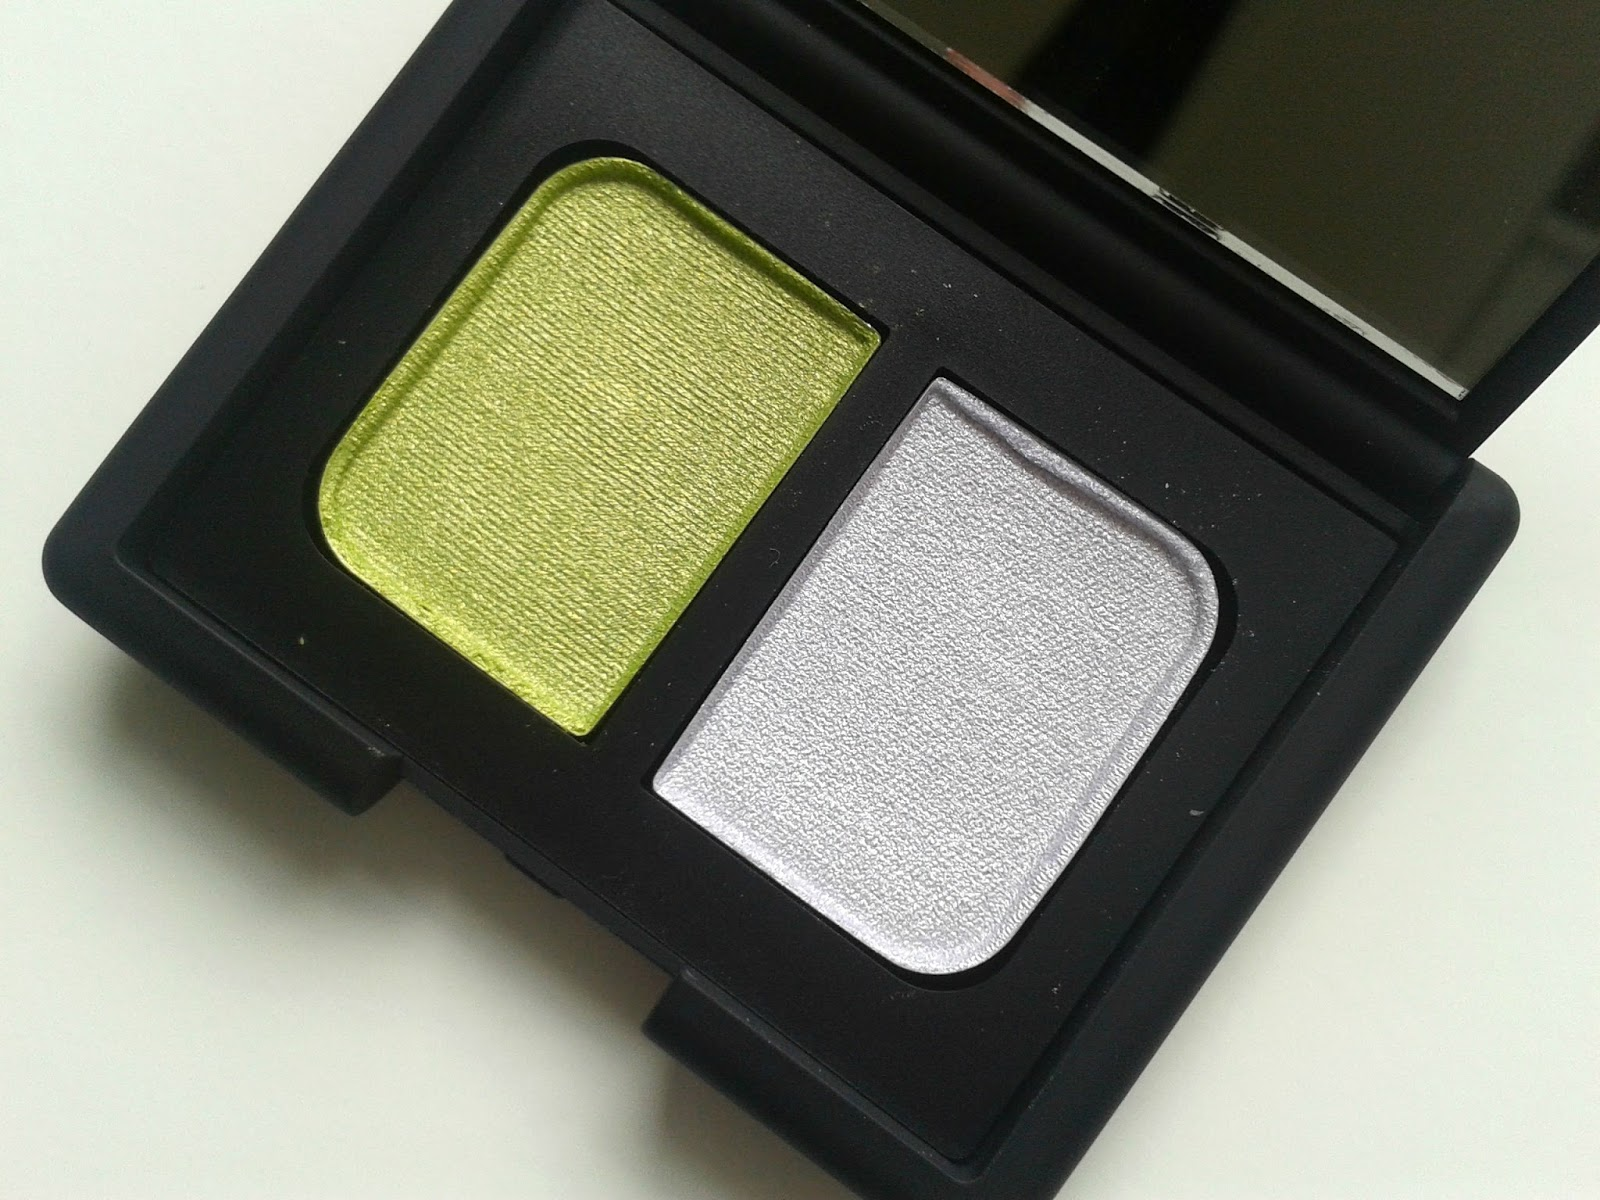 NARS Tropical Princess Eyeshadow Duo Beauty Review Swatch